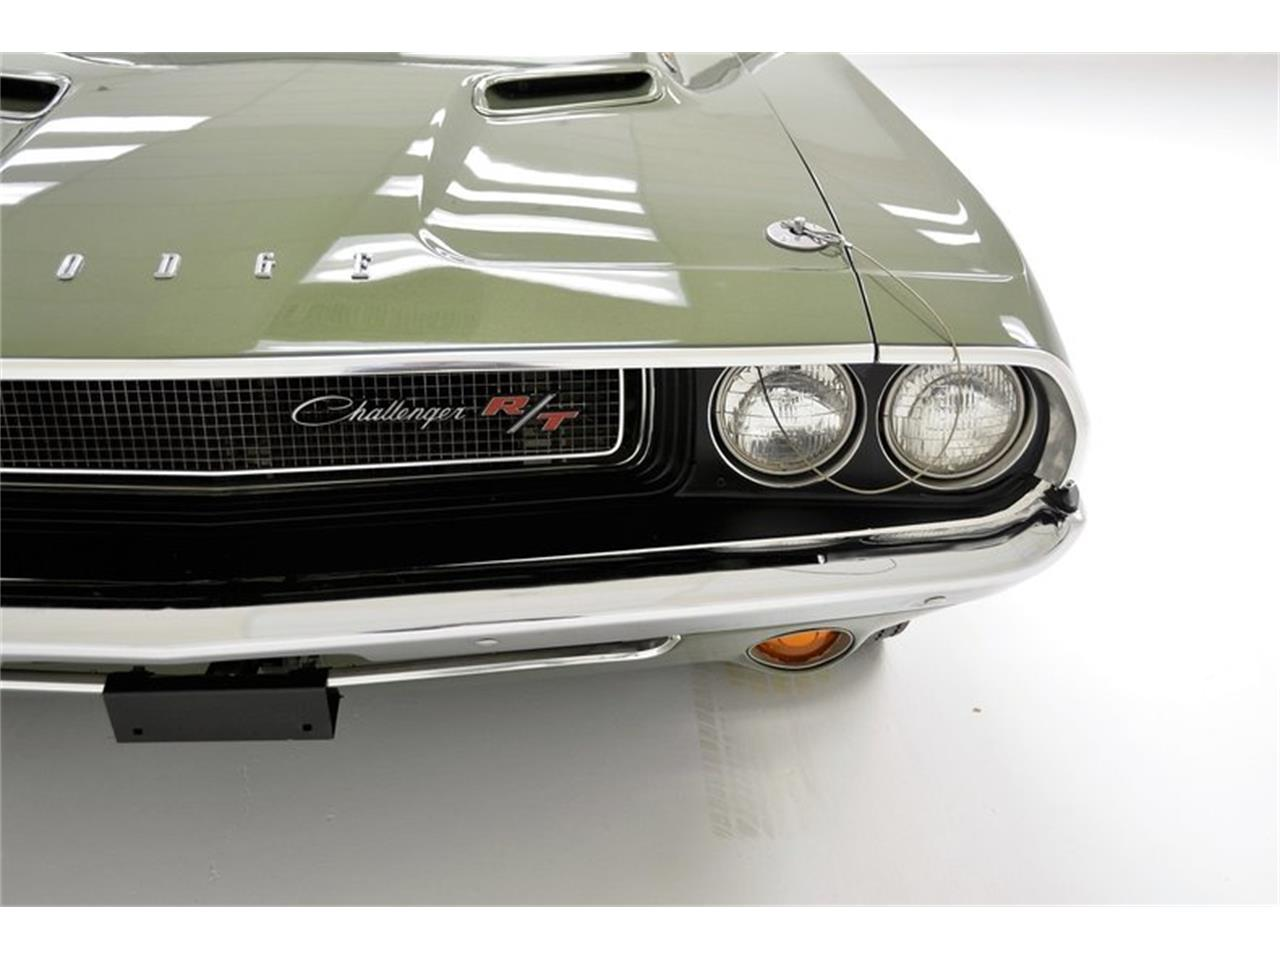 Large Picture of Classic '70 Dodge Challenger R/T - $395,000.00 Offered by Classic Auto Mall - MZHE